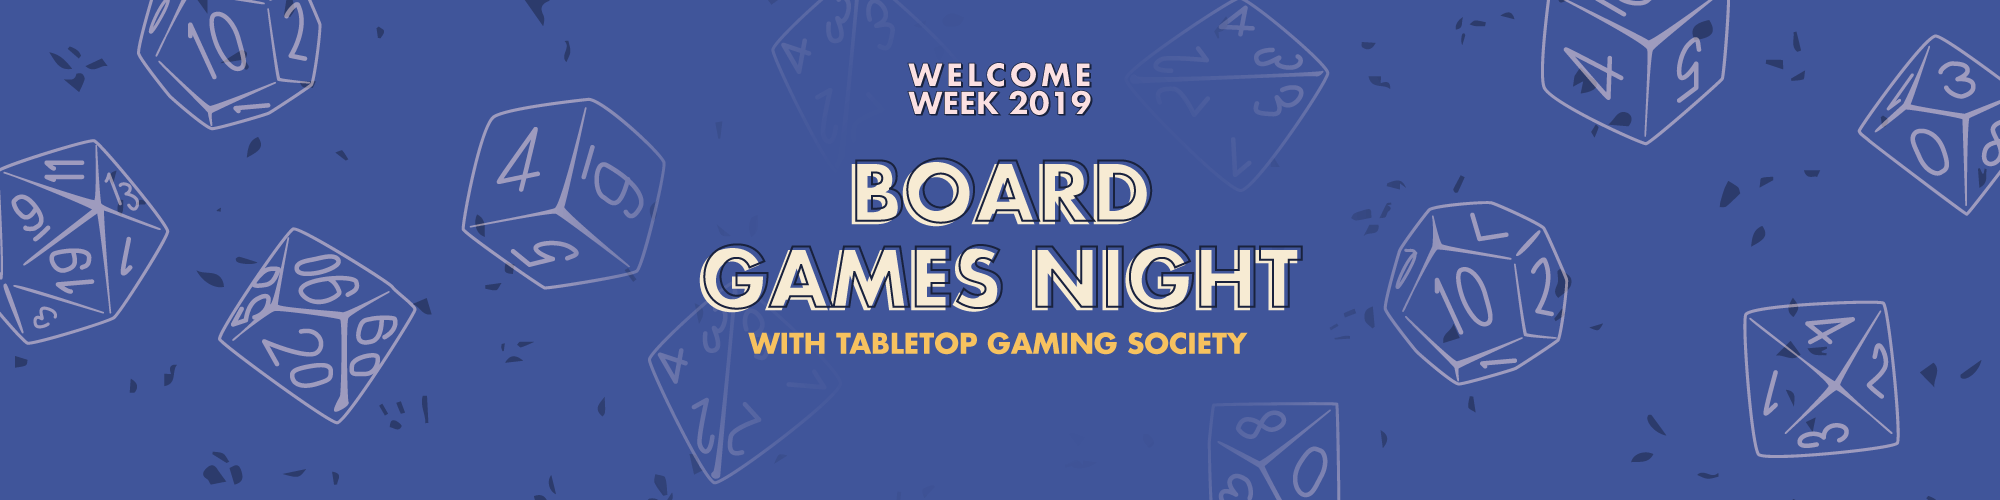 Board Games Night with Tabletop Gaming Society